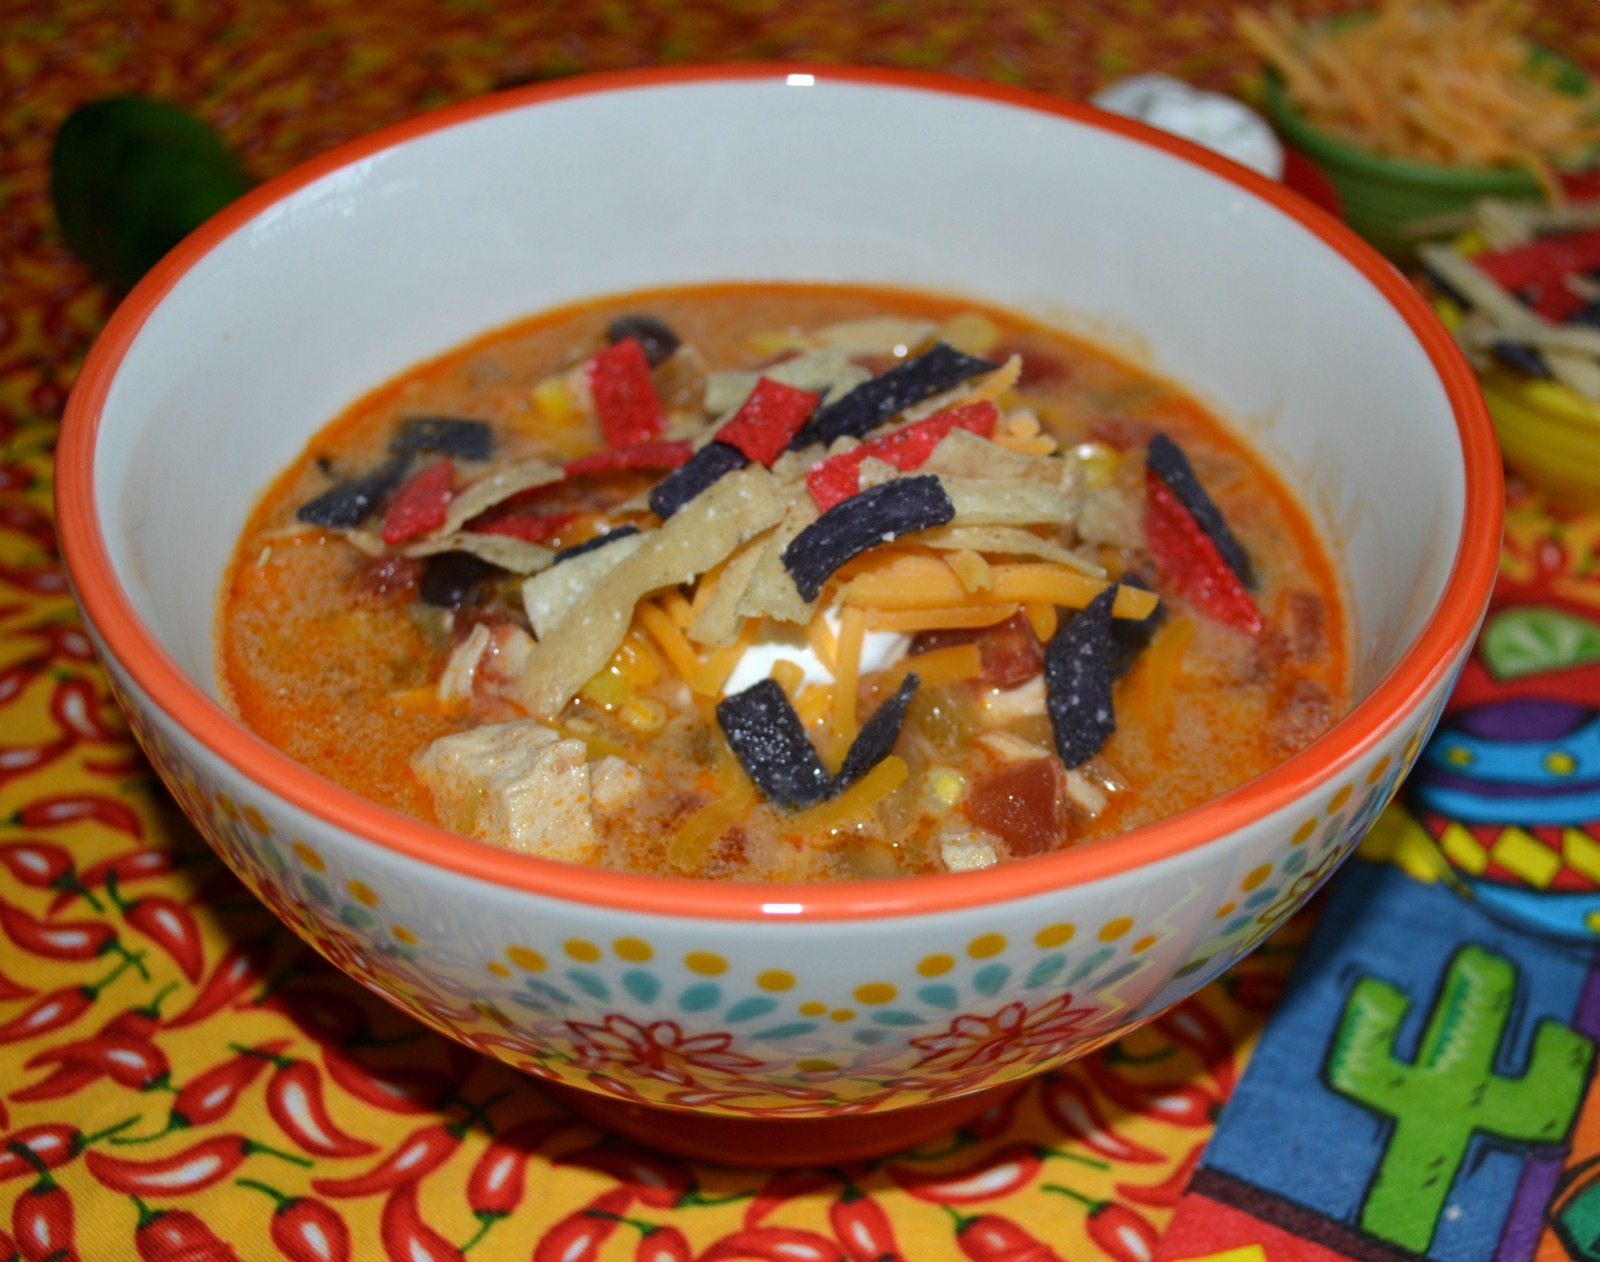 favorite soup recipes, spicy chicken enchilada soup, downsized cooking, cooking for 2